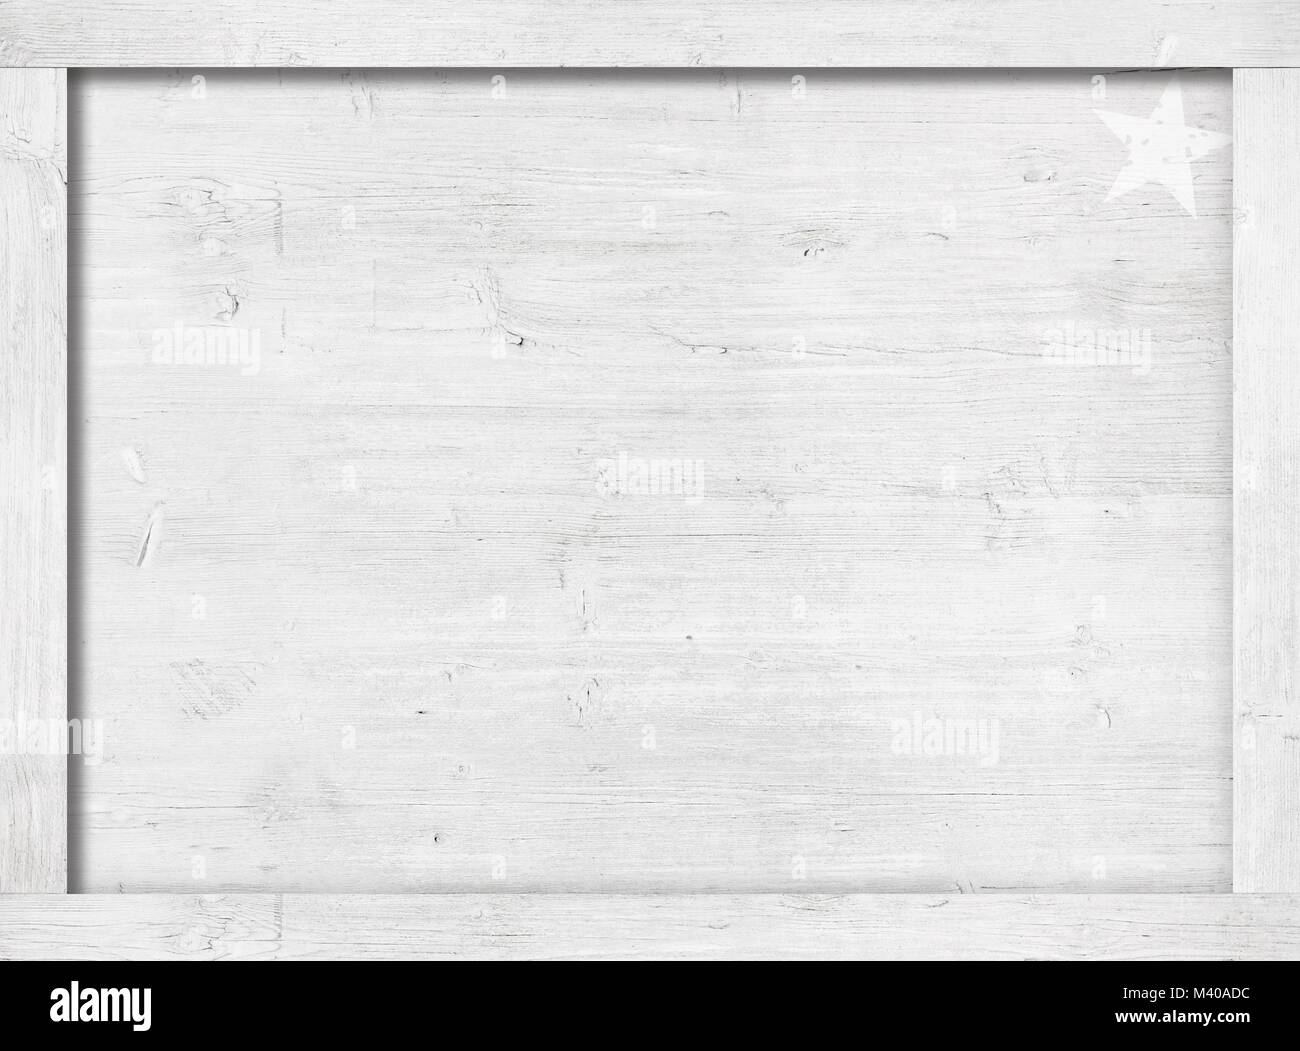 Side of white painted wooden crate, box, frame for text, message or picture - Stock Image